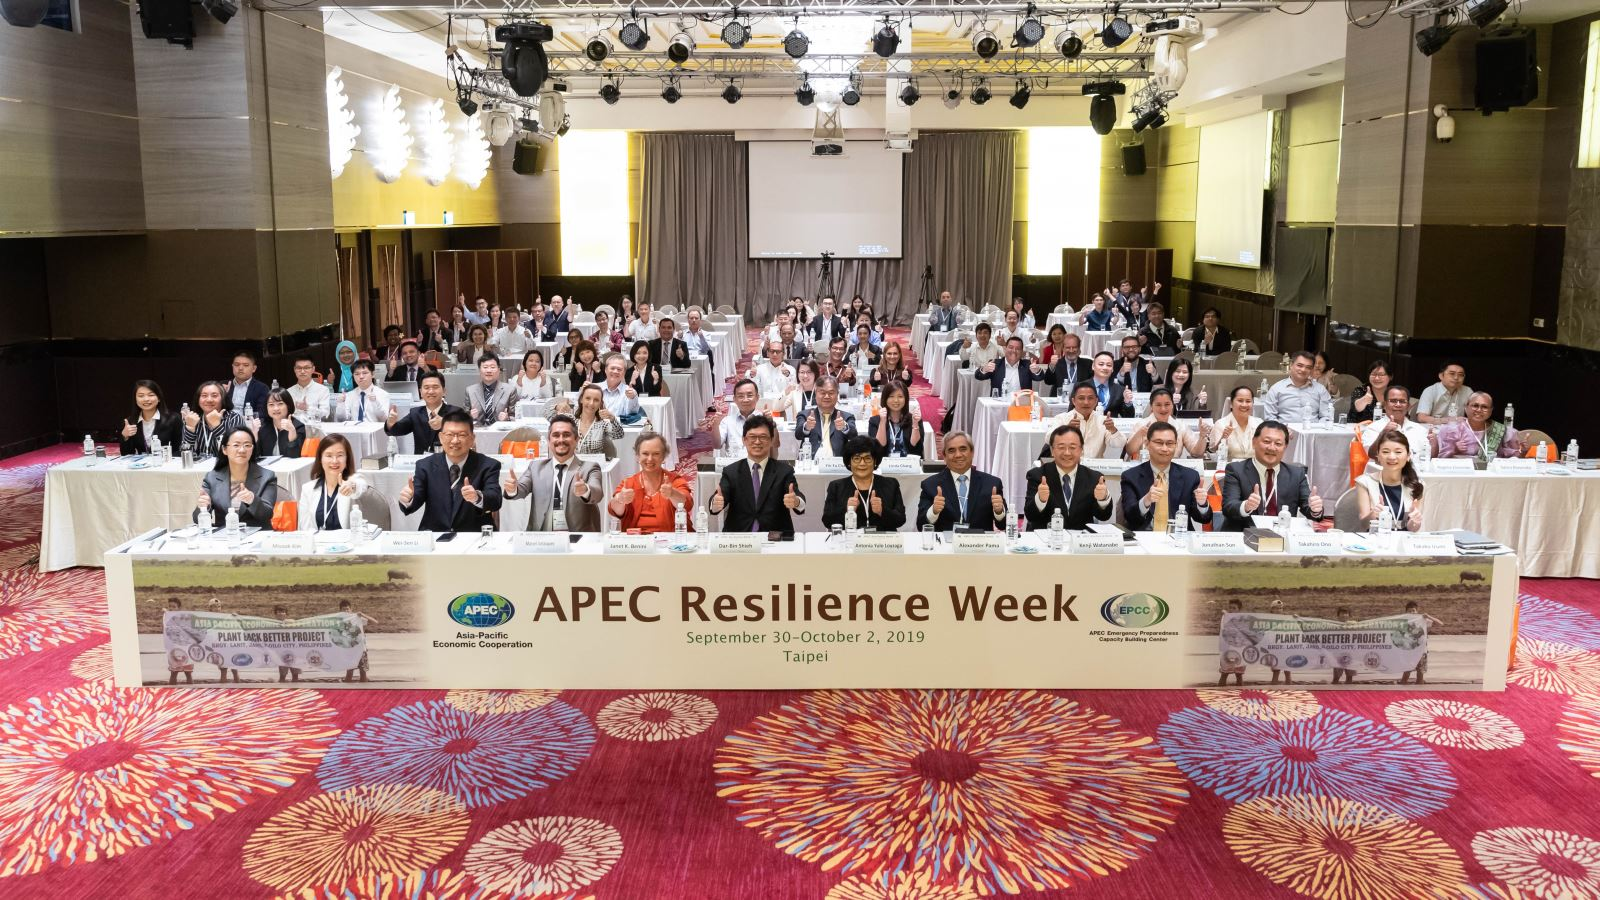 NCDR hosted the APEC Resilience Week in Taipei during September 30 – October 2.